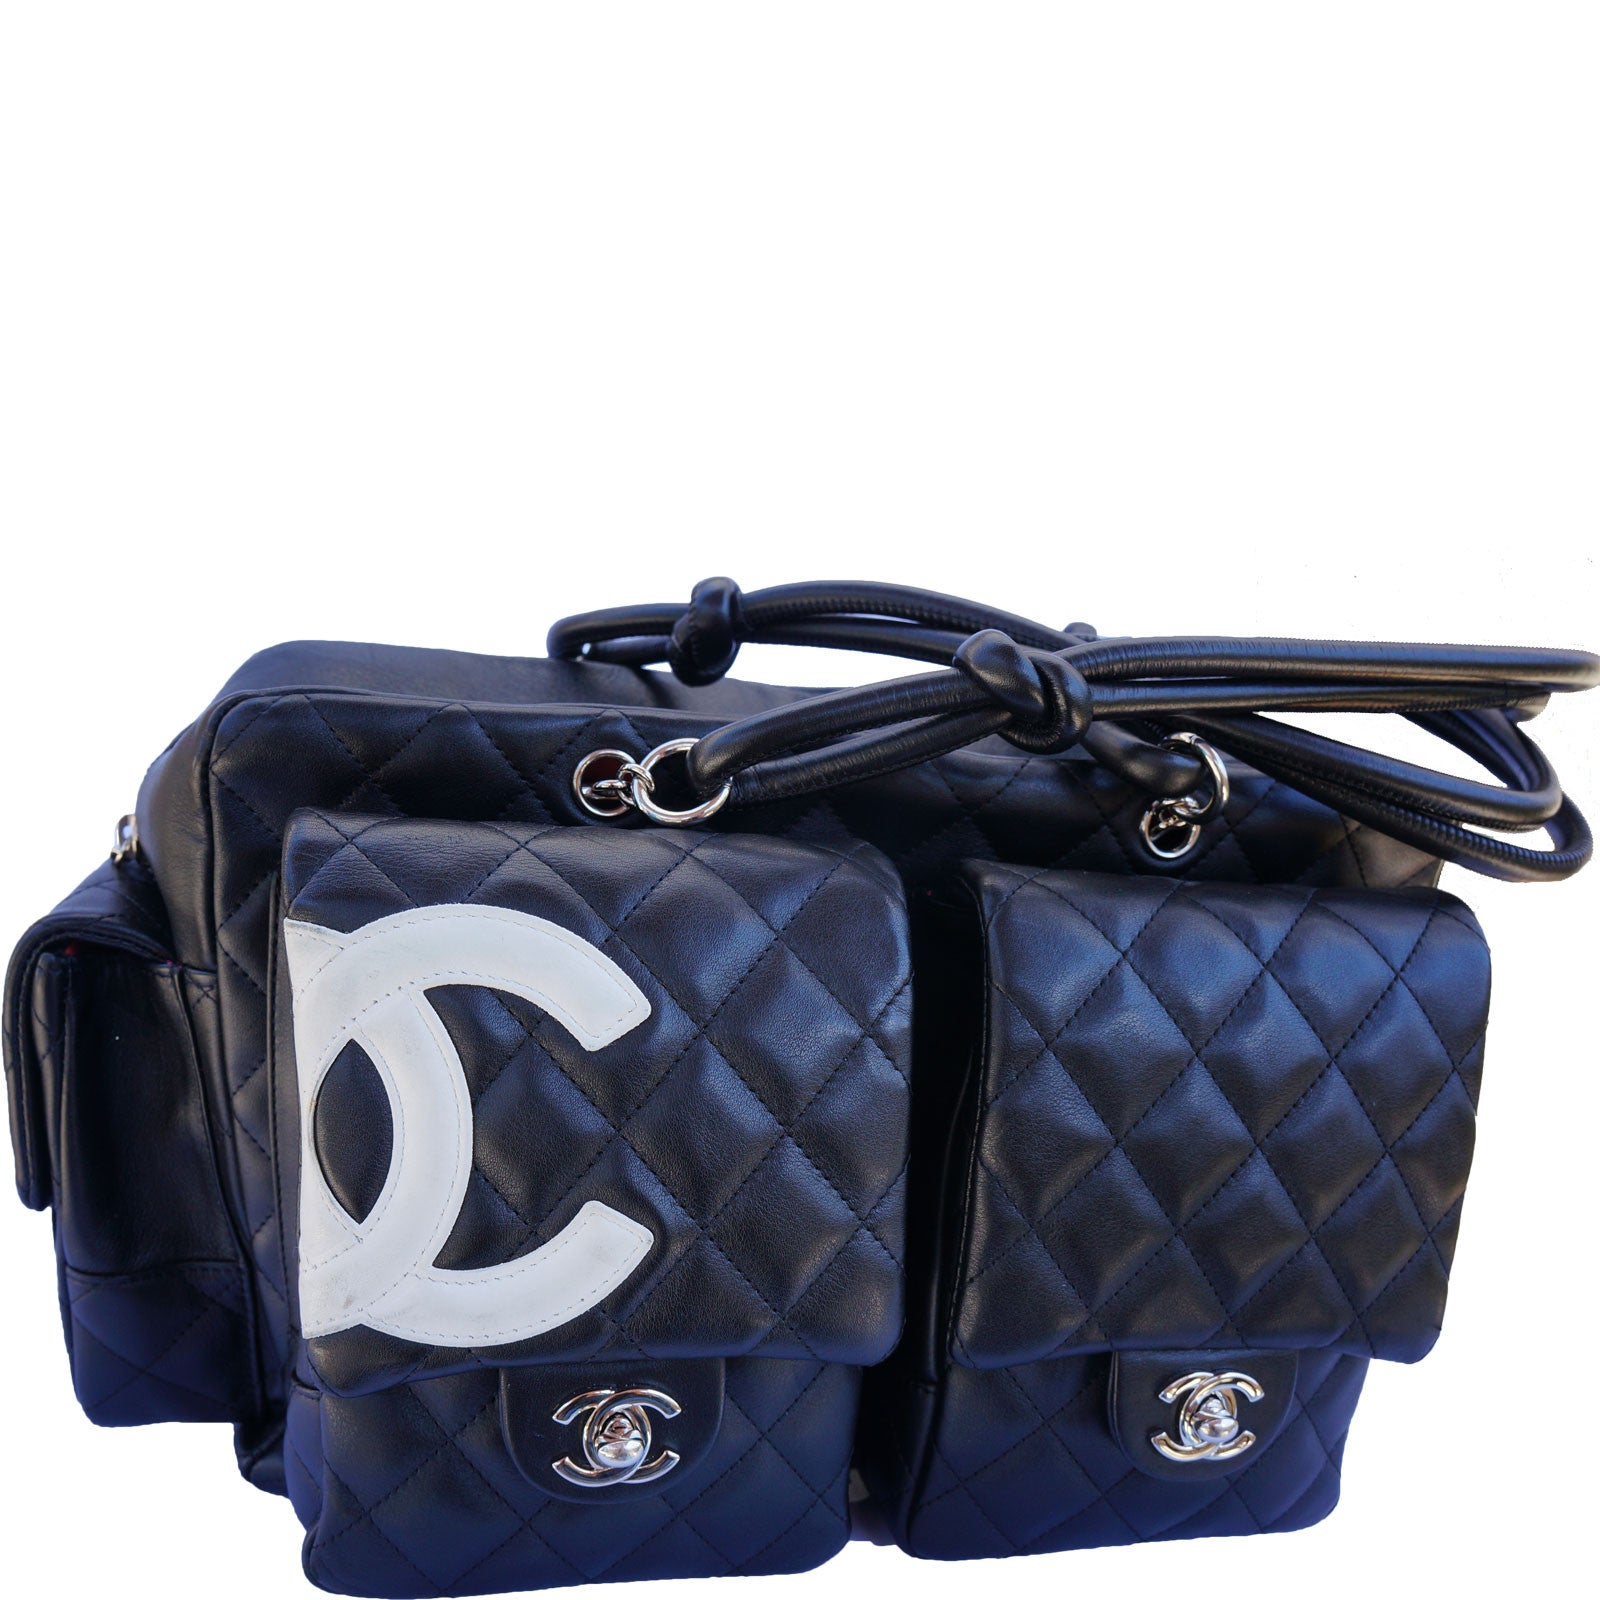 c4f7495a73d6fb ... CHANEL LIGNE CAMBON LARGE REPORTER BAG on Leef luxury authentic  designer resale consignment ...